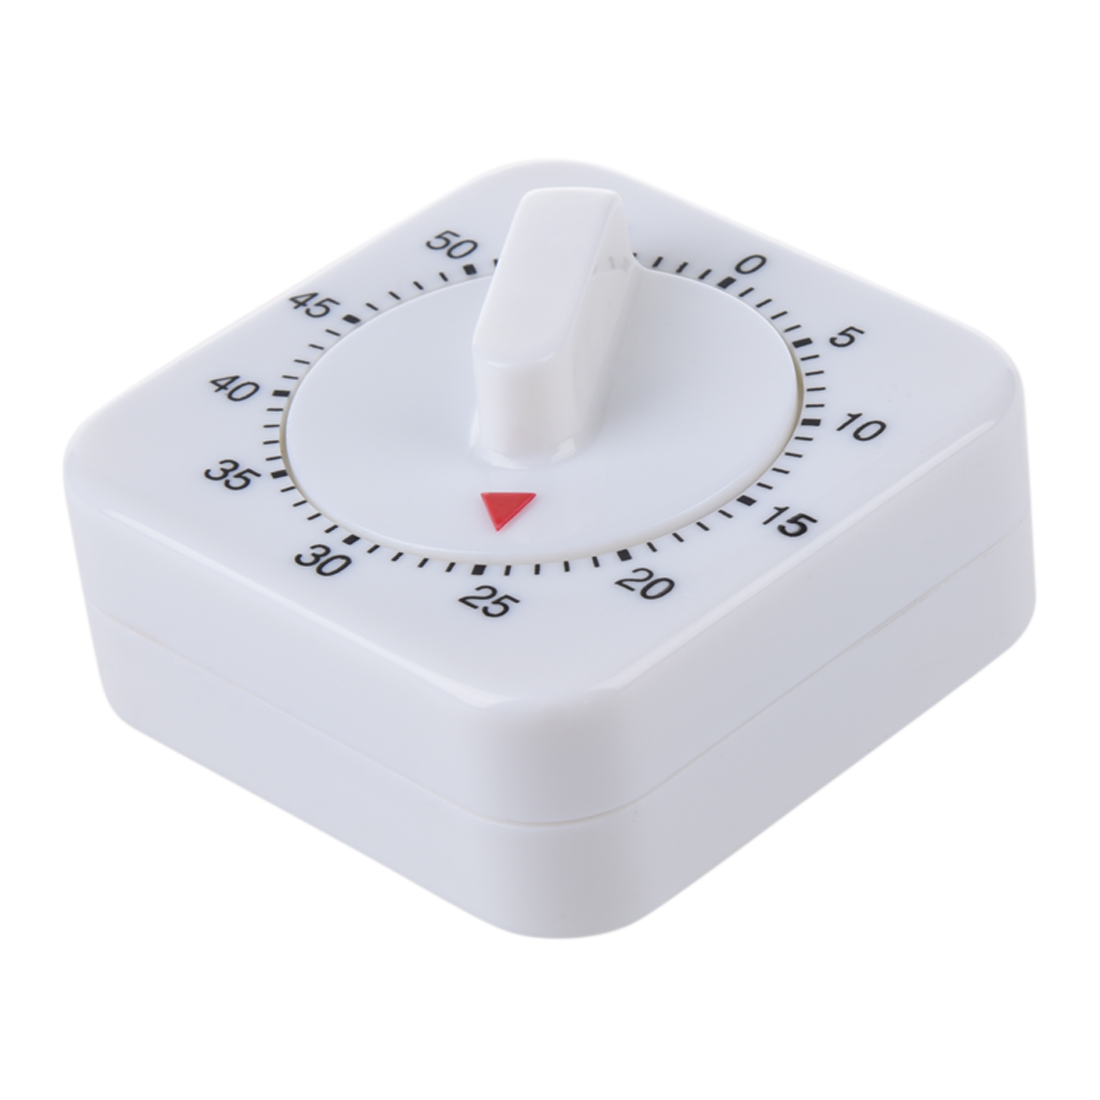 Details about Mechanical Kitchen Cooking Desktop Game Countdown Timer Stop  Alarm Clock AD